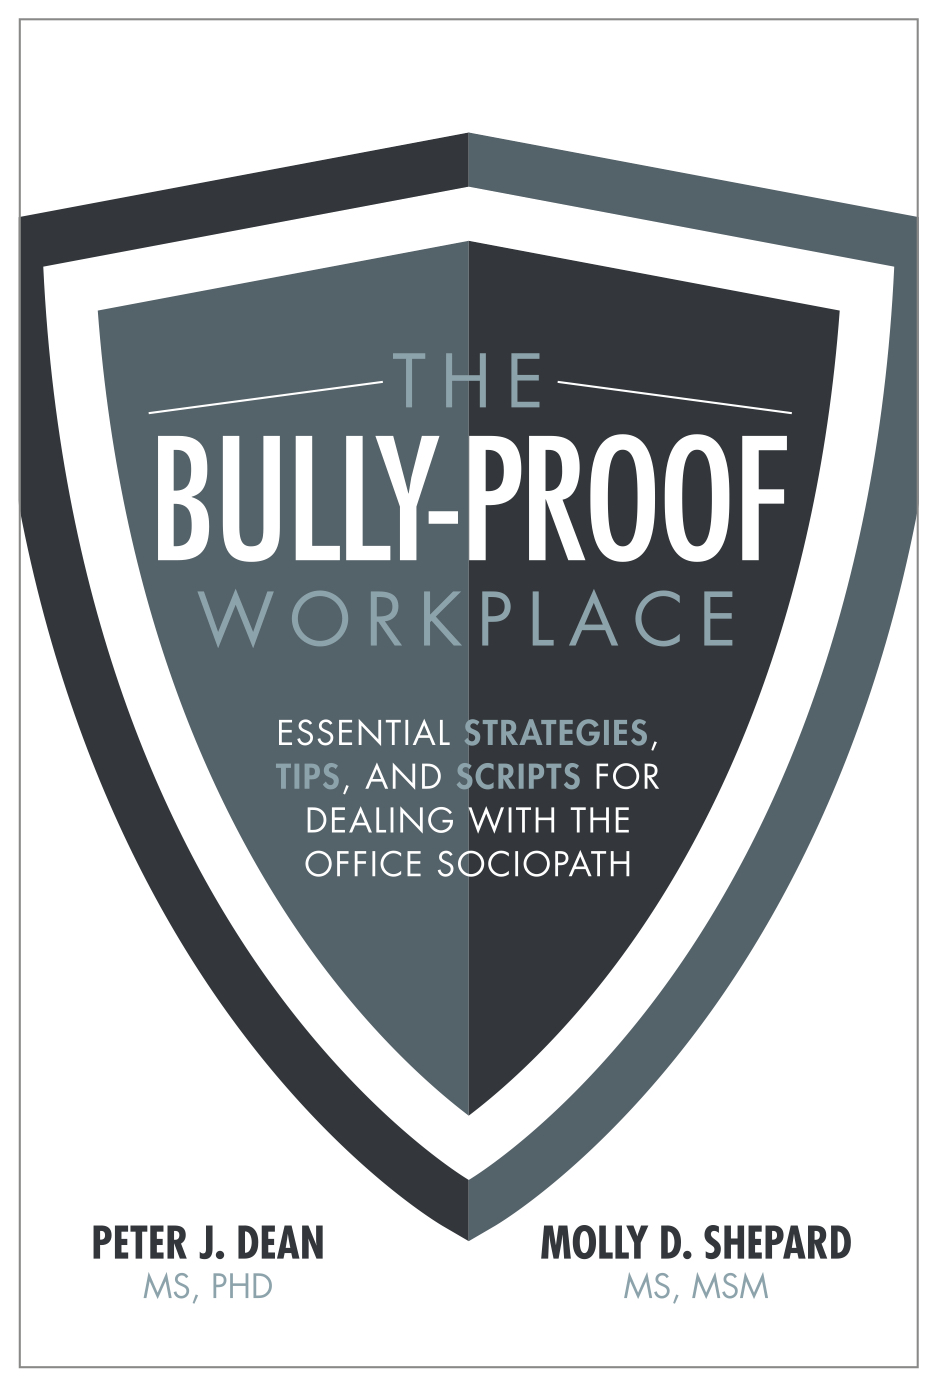 COVER16859_The_BullyProof_Workplace_Dean_R21 (002)